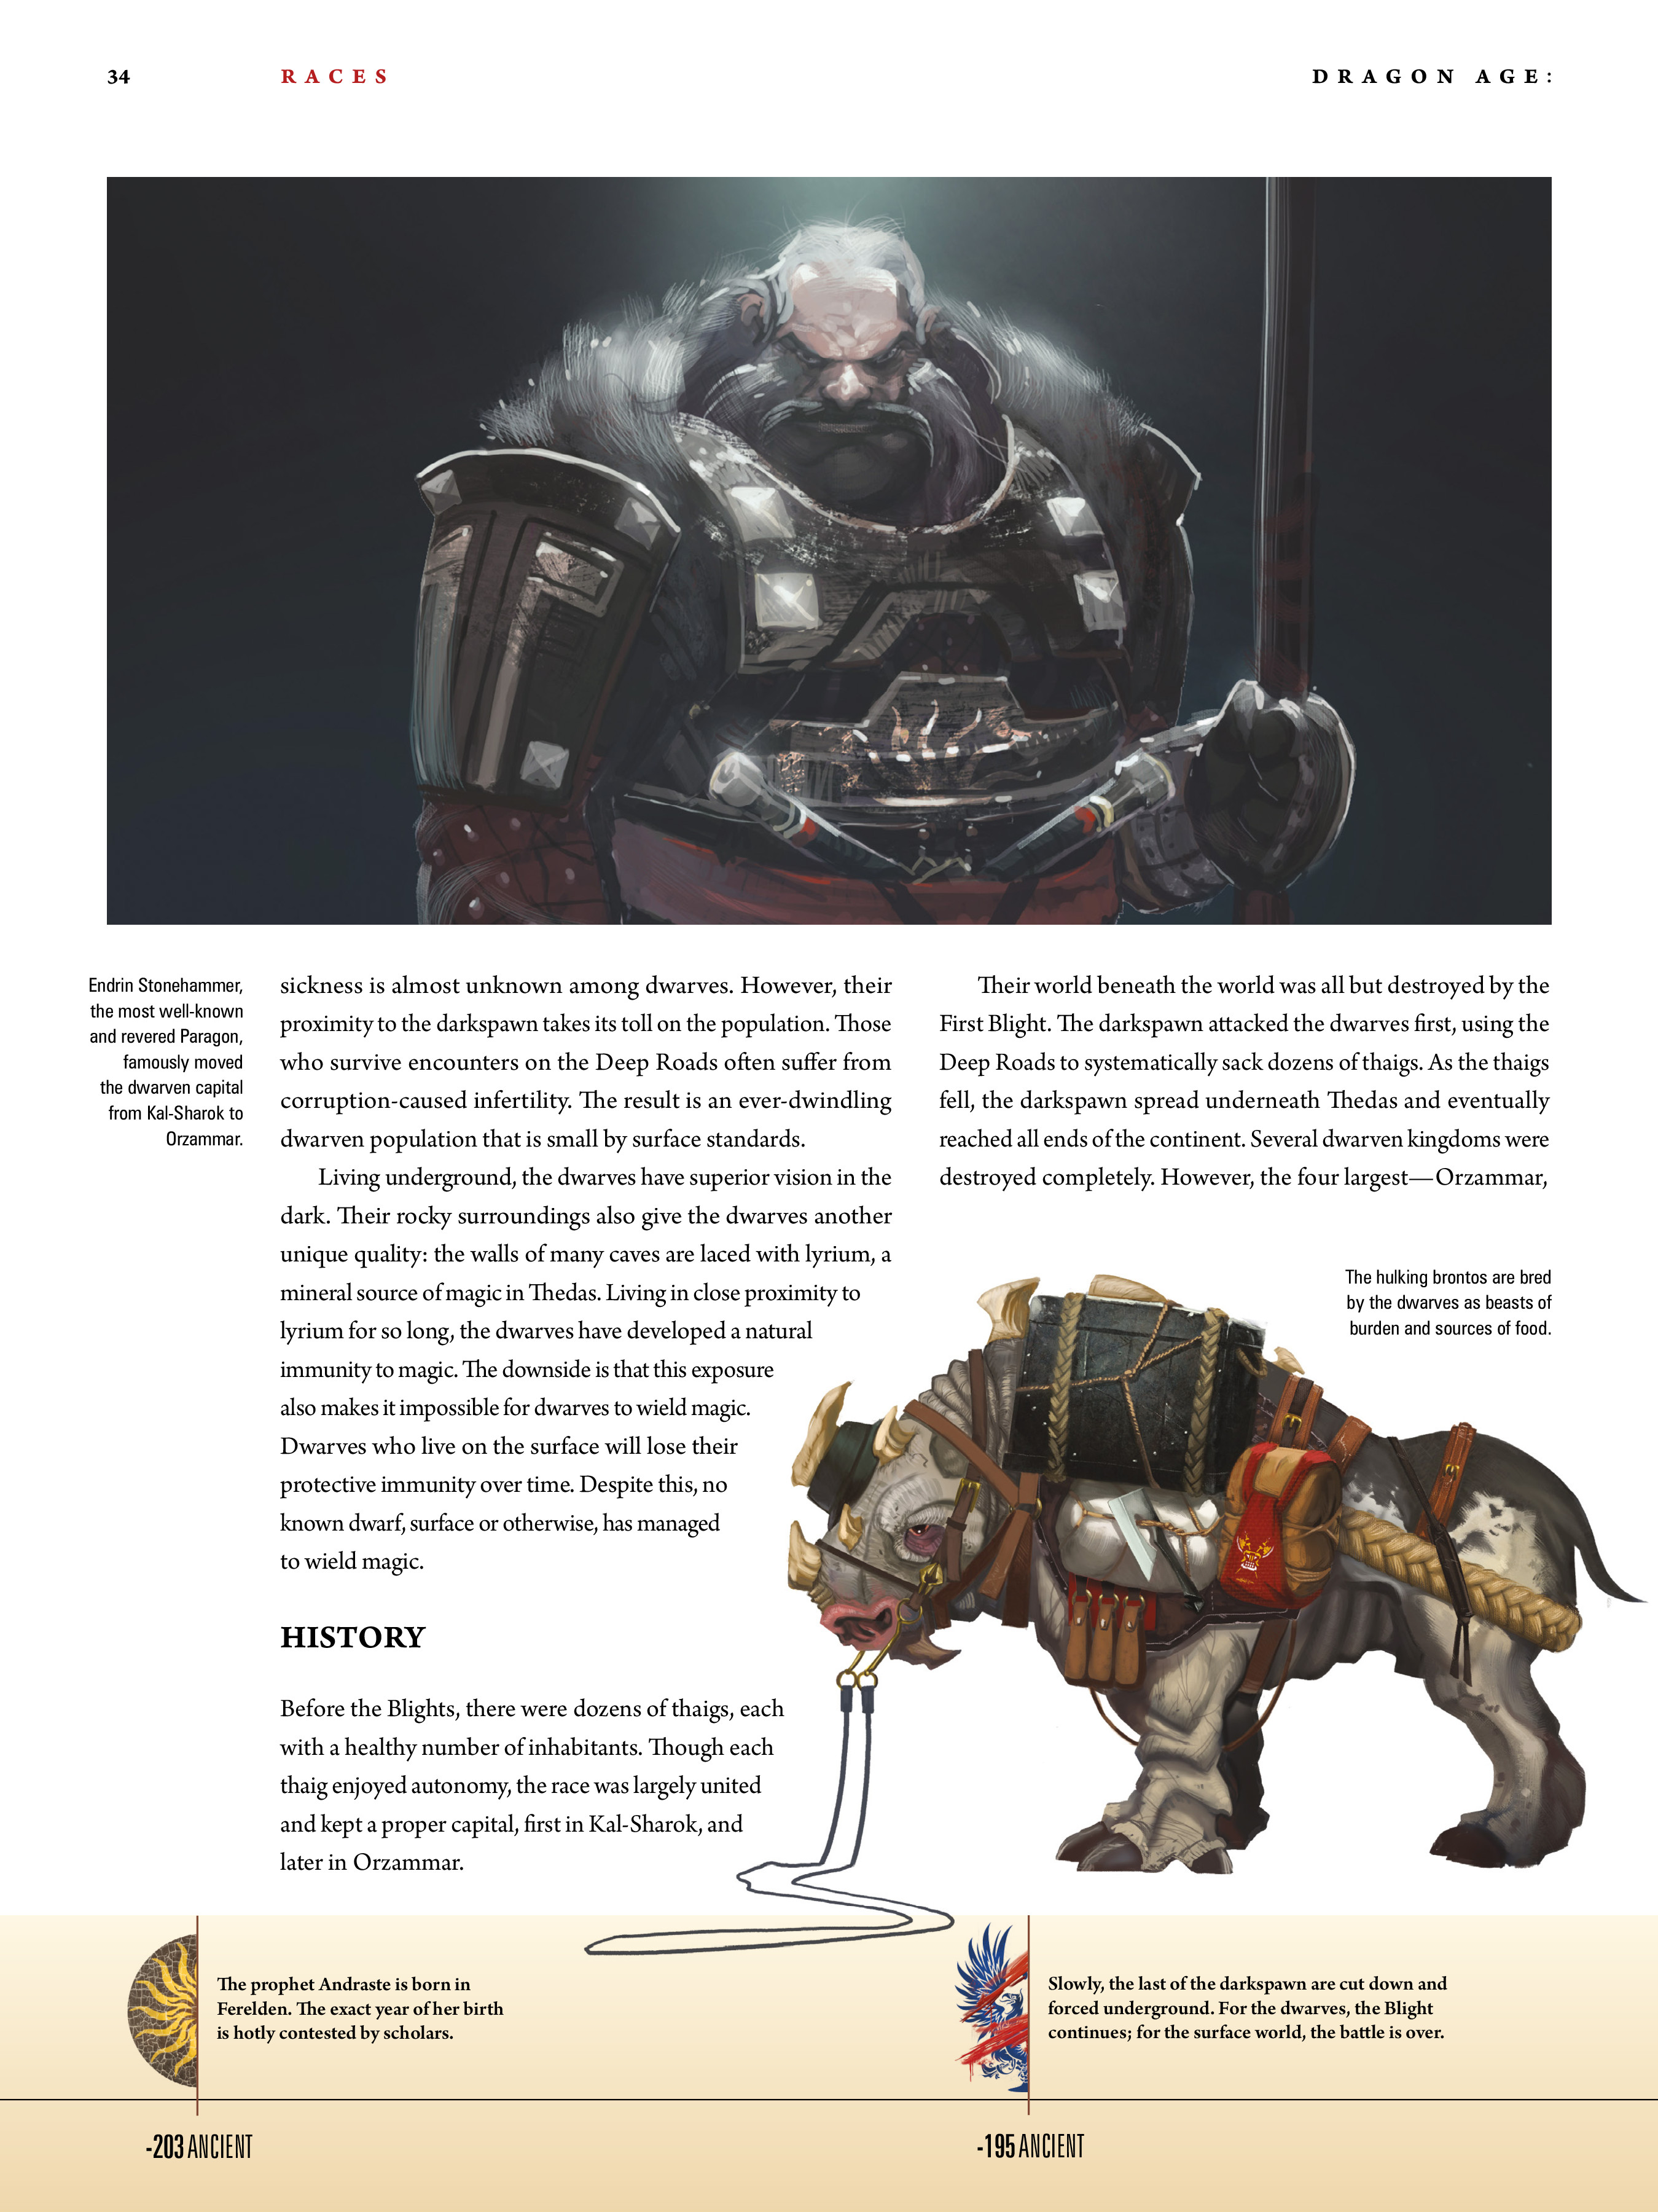 Read online Dragon Age: The World of Thedas comic -  Issue # TPB 1 - 27